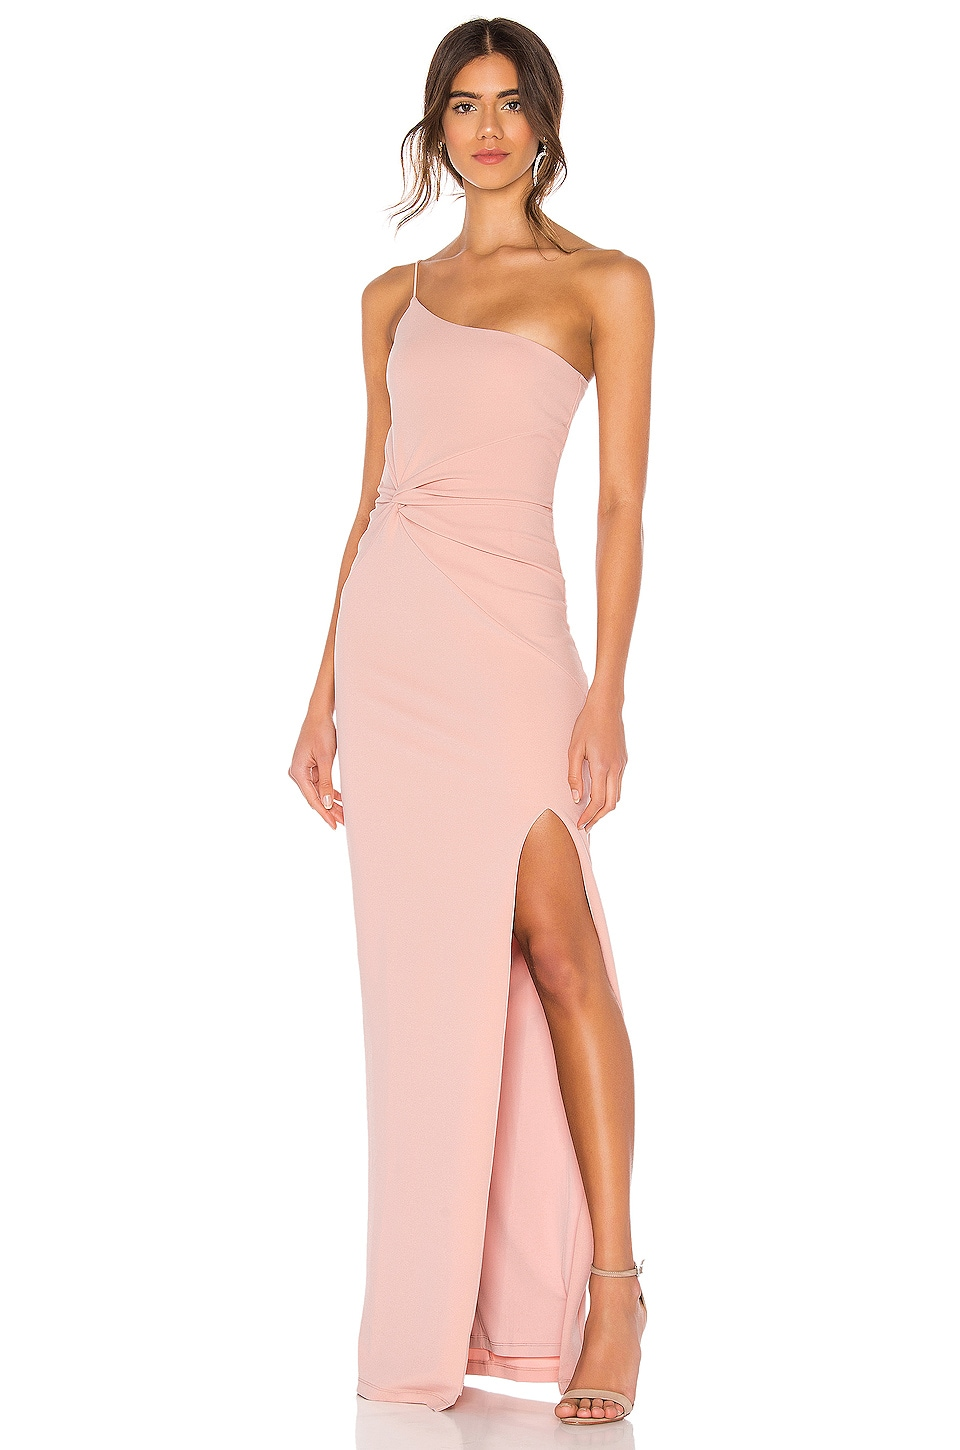 Nookie Lust One Shoulder Gown in Blush